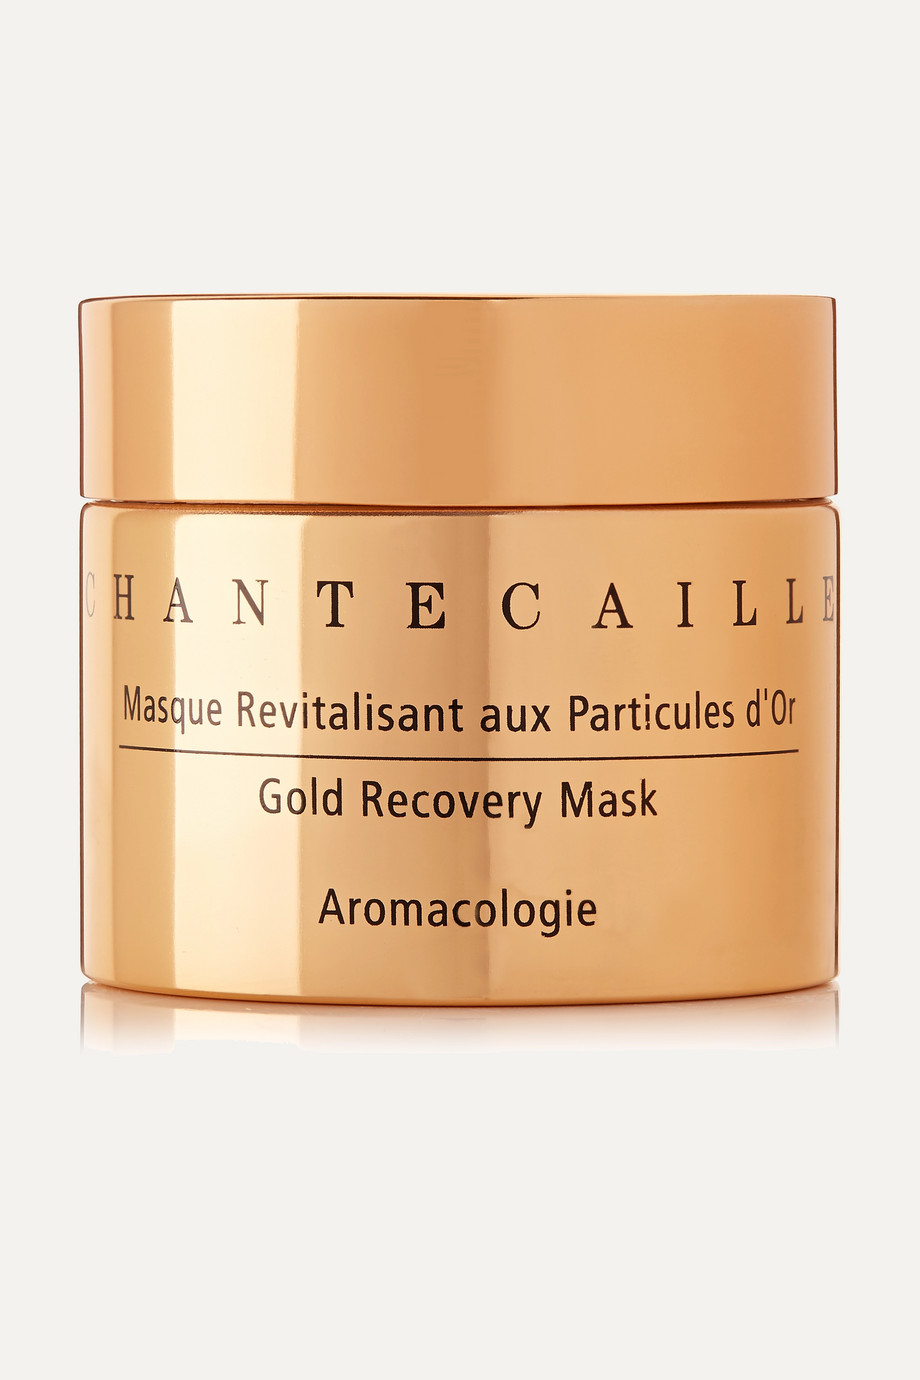 Chantecaille Gold Recovery Mask, 50ml